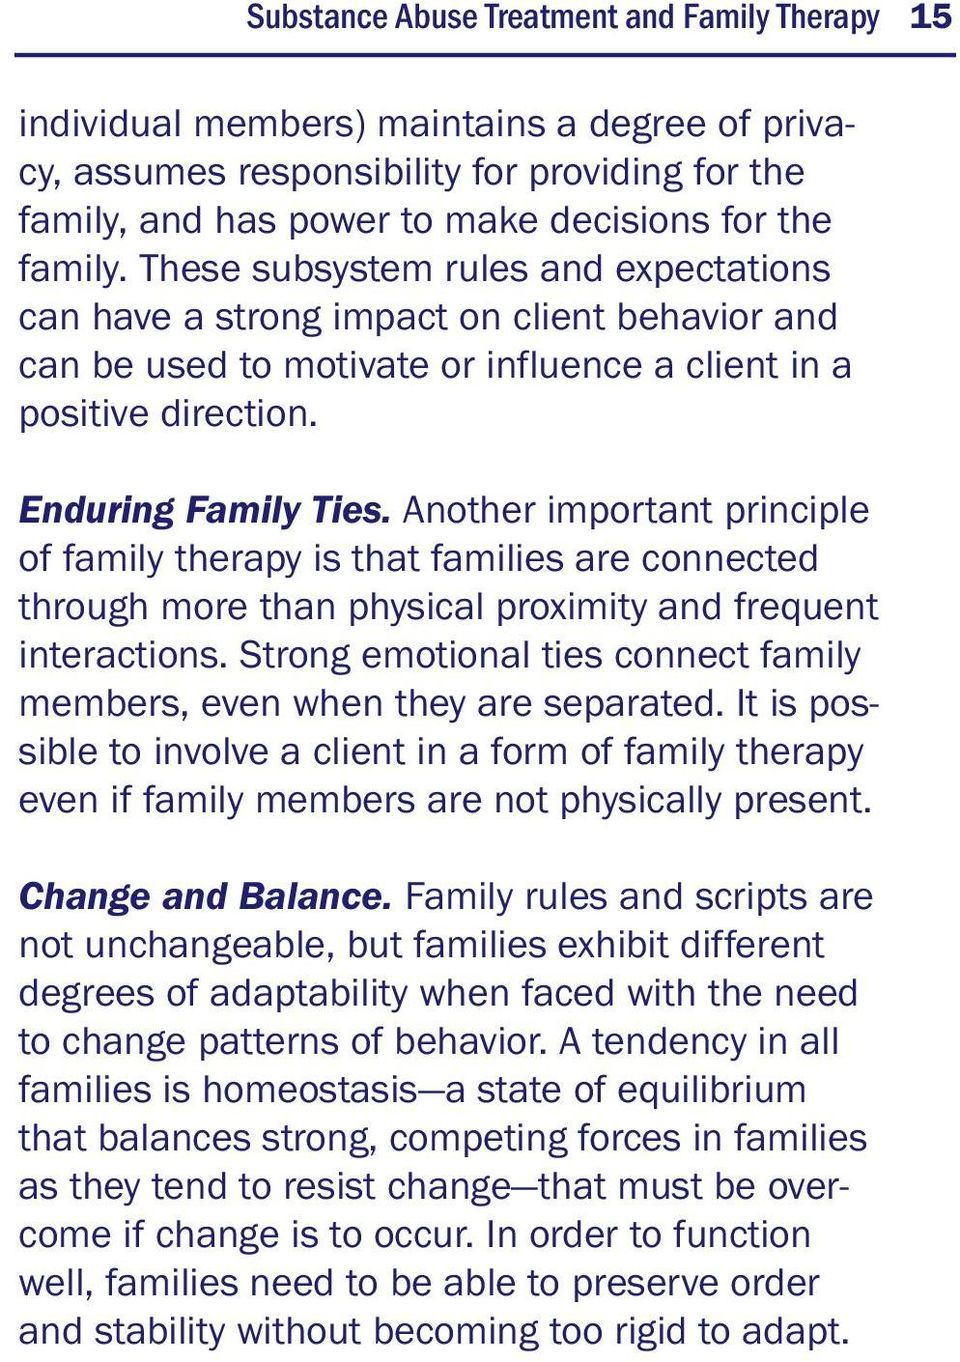 Another important principle of family therapy is that families are connected through more than physical proximity and frequent interactions.